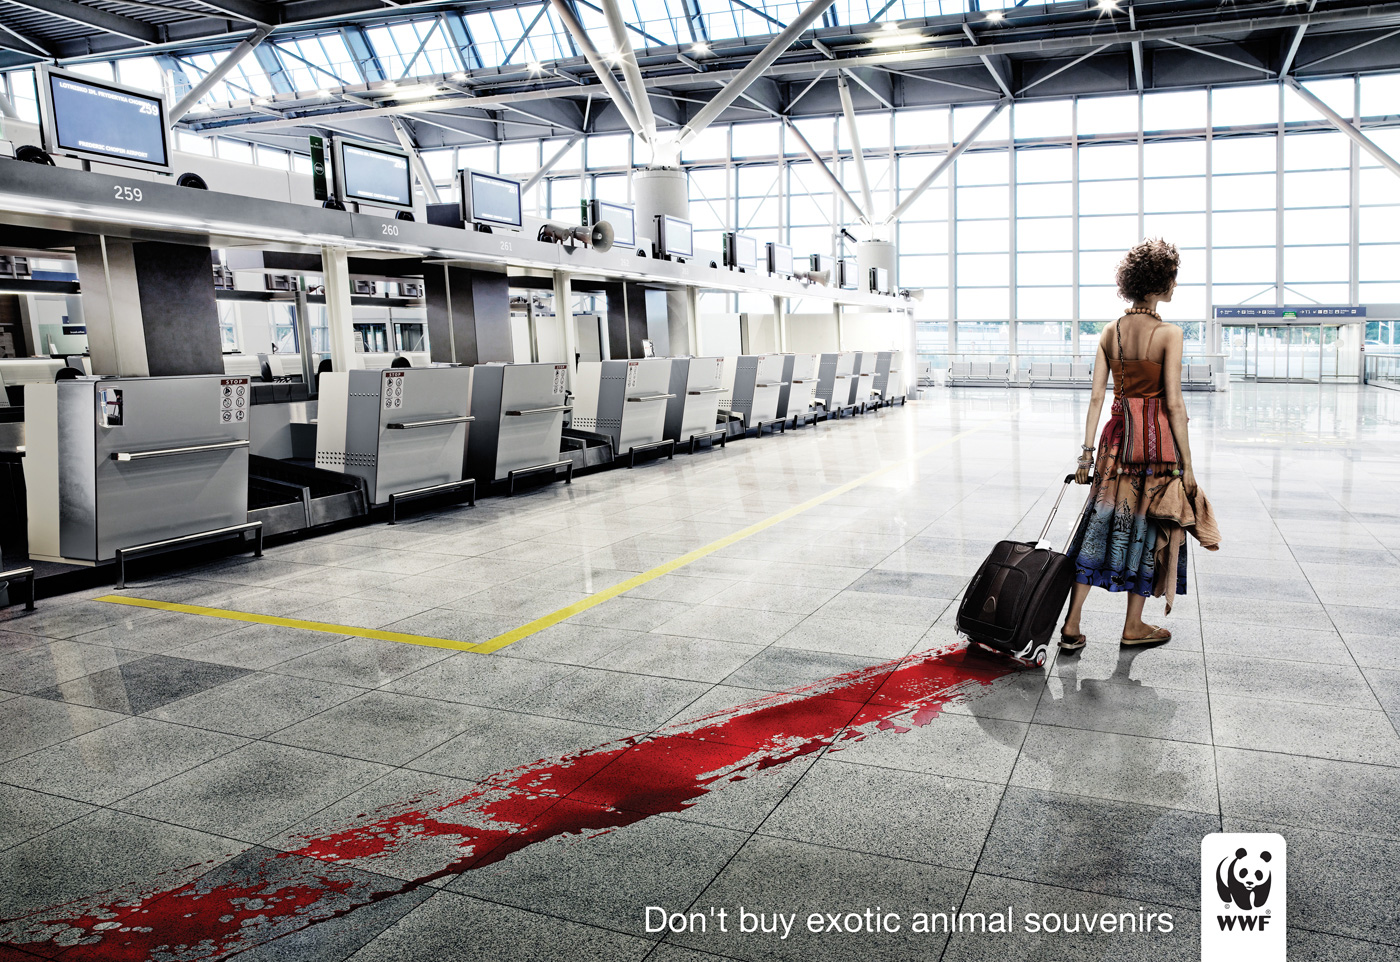 Public Awareness Issues: 10 Powerful Social Advertising Campaigns